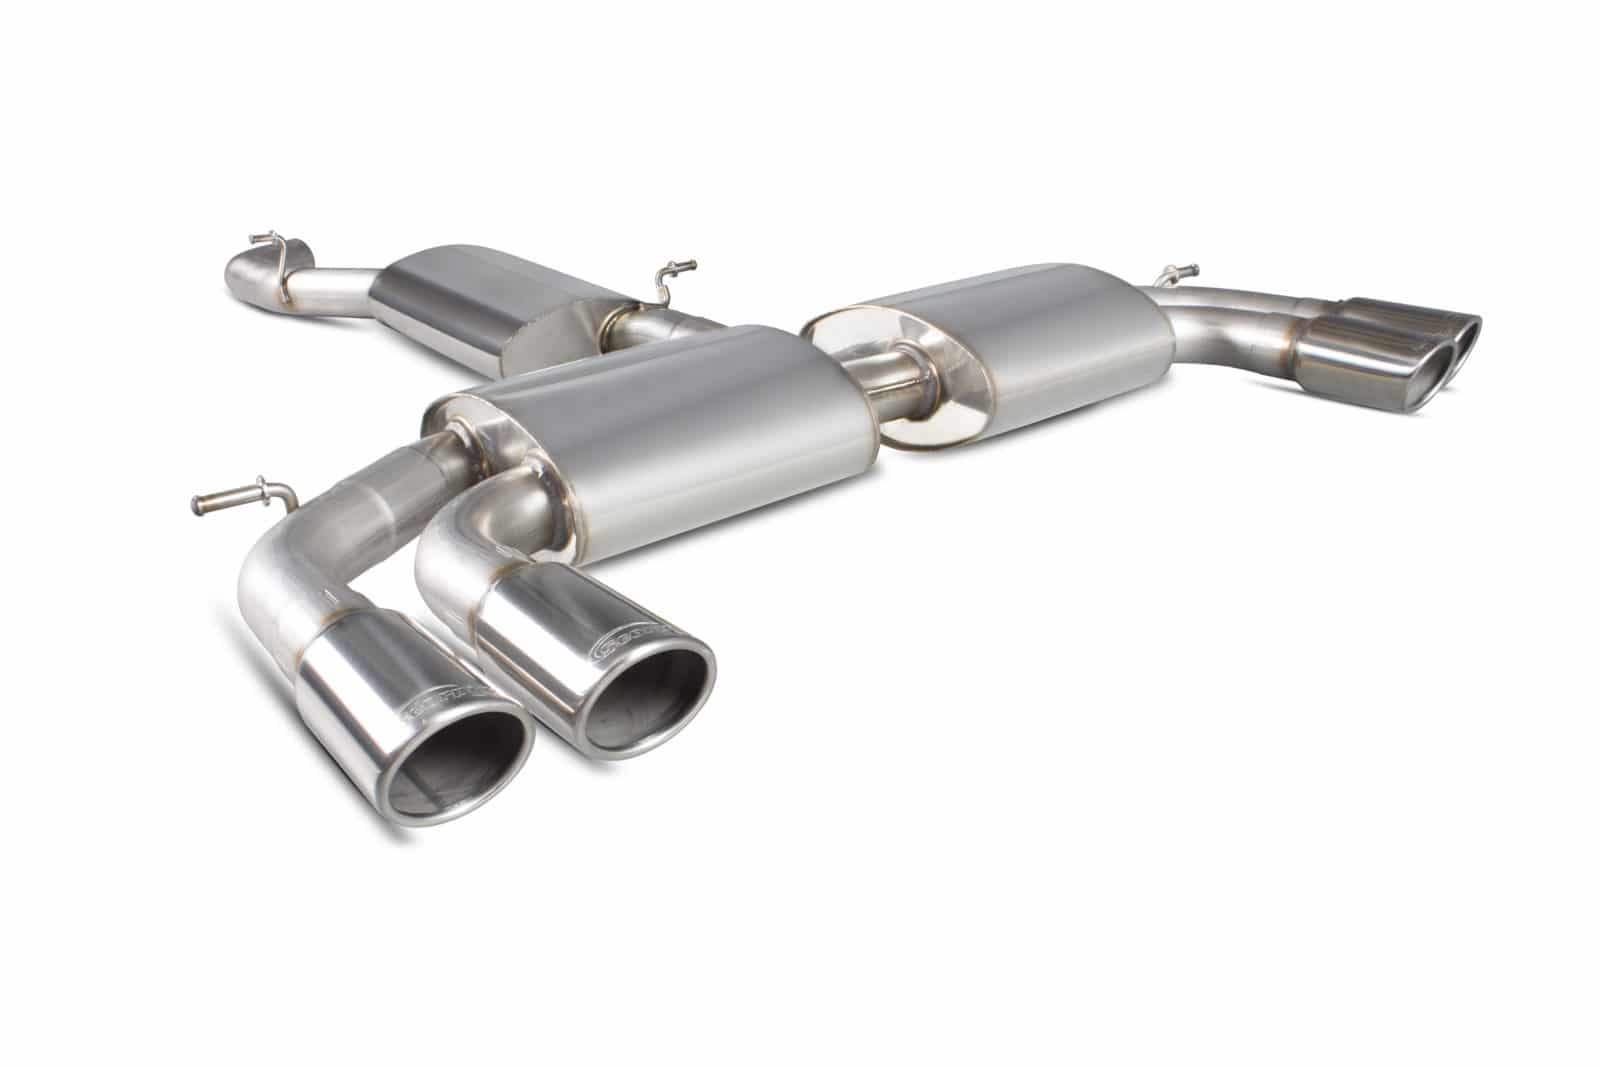 Scorpion Audi S3 2 0T 8V (Saloon) Resonated Cat-Back Exhaust with No  Valves- Polished Quad Monaco Tips - SAU052